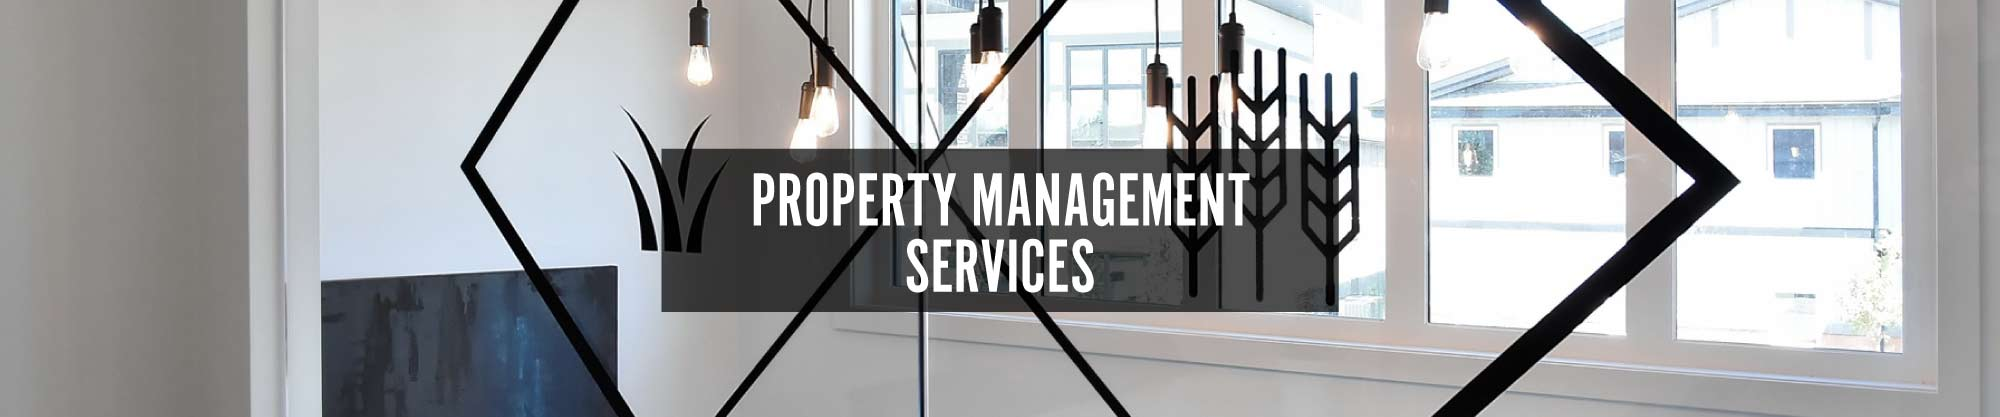 Grassroots Property Management - Residential and Commercial Property Management - Grande Prairie, AB